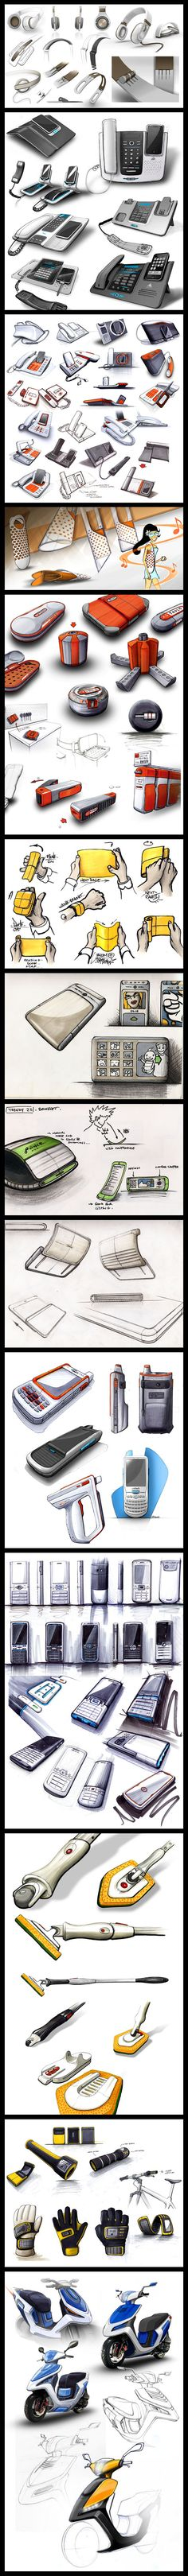 Sketchbook samples by jules parmentier, via Behance.